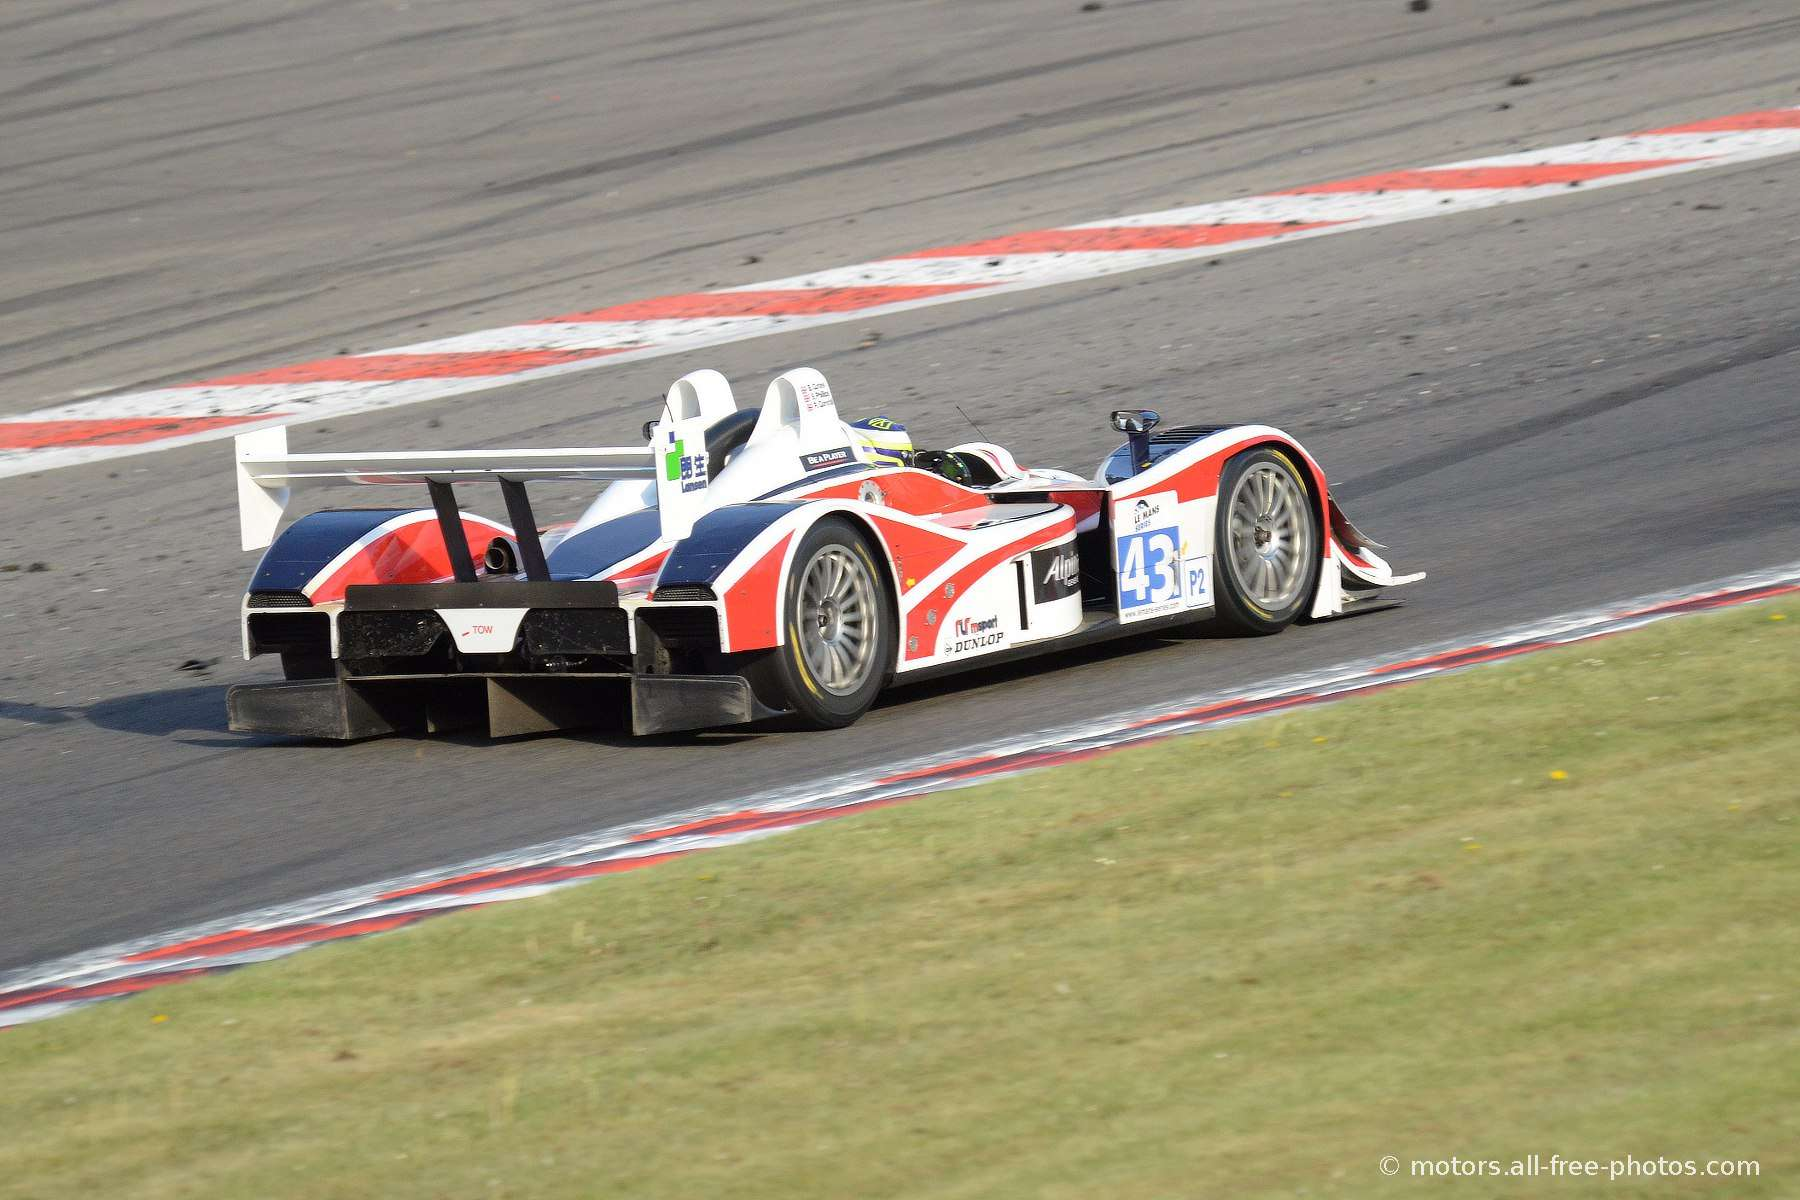 MG Lola EX265 AER - Team RLR msport